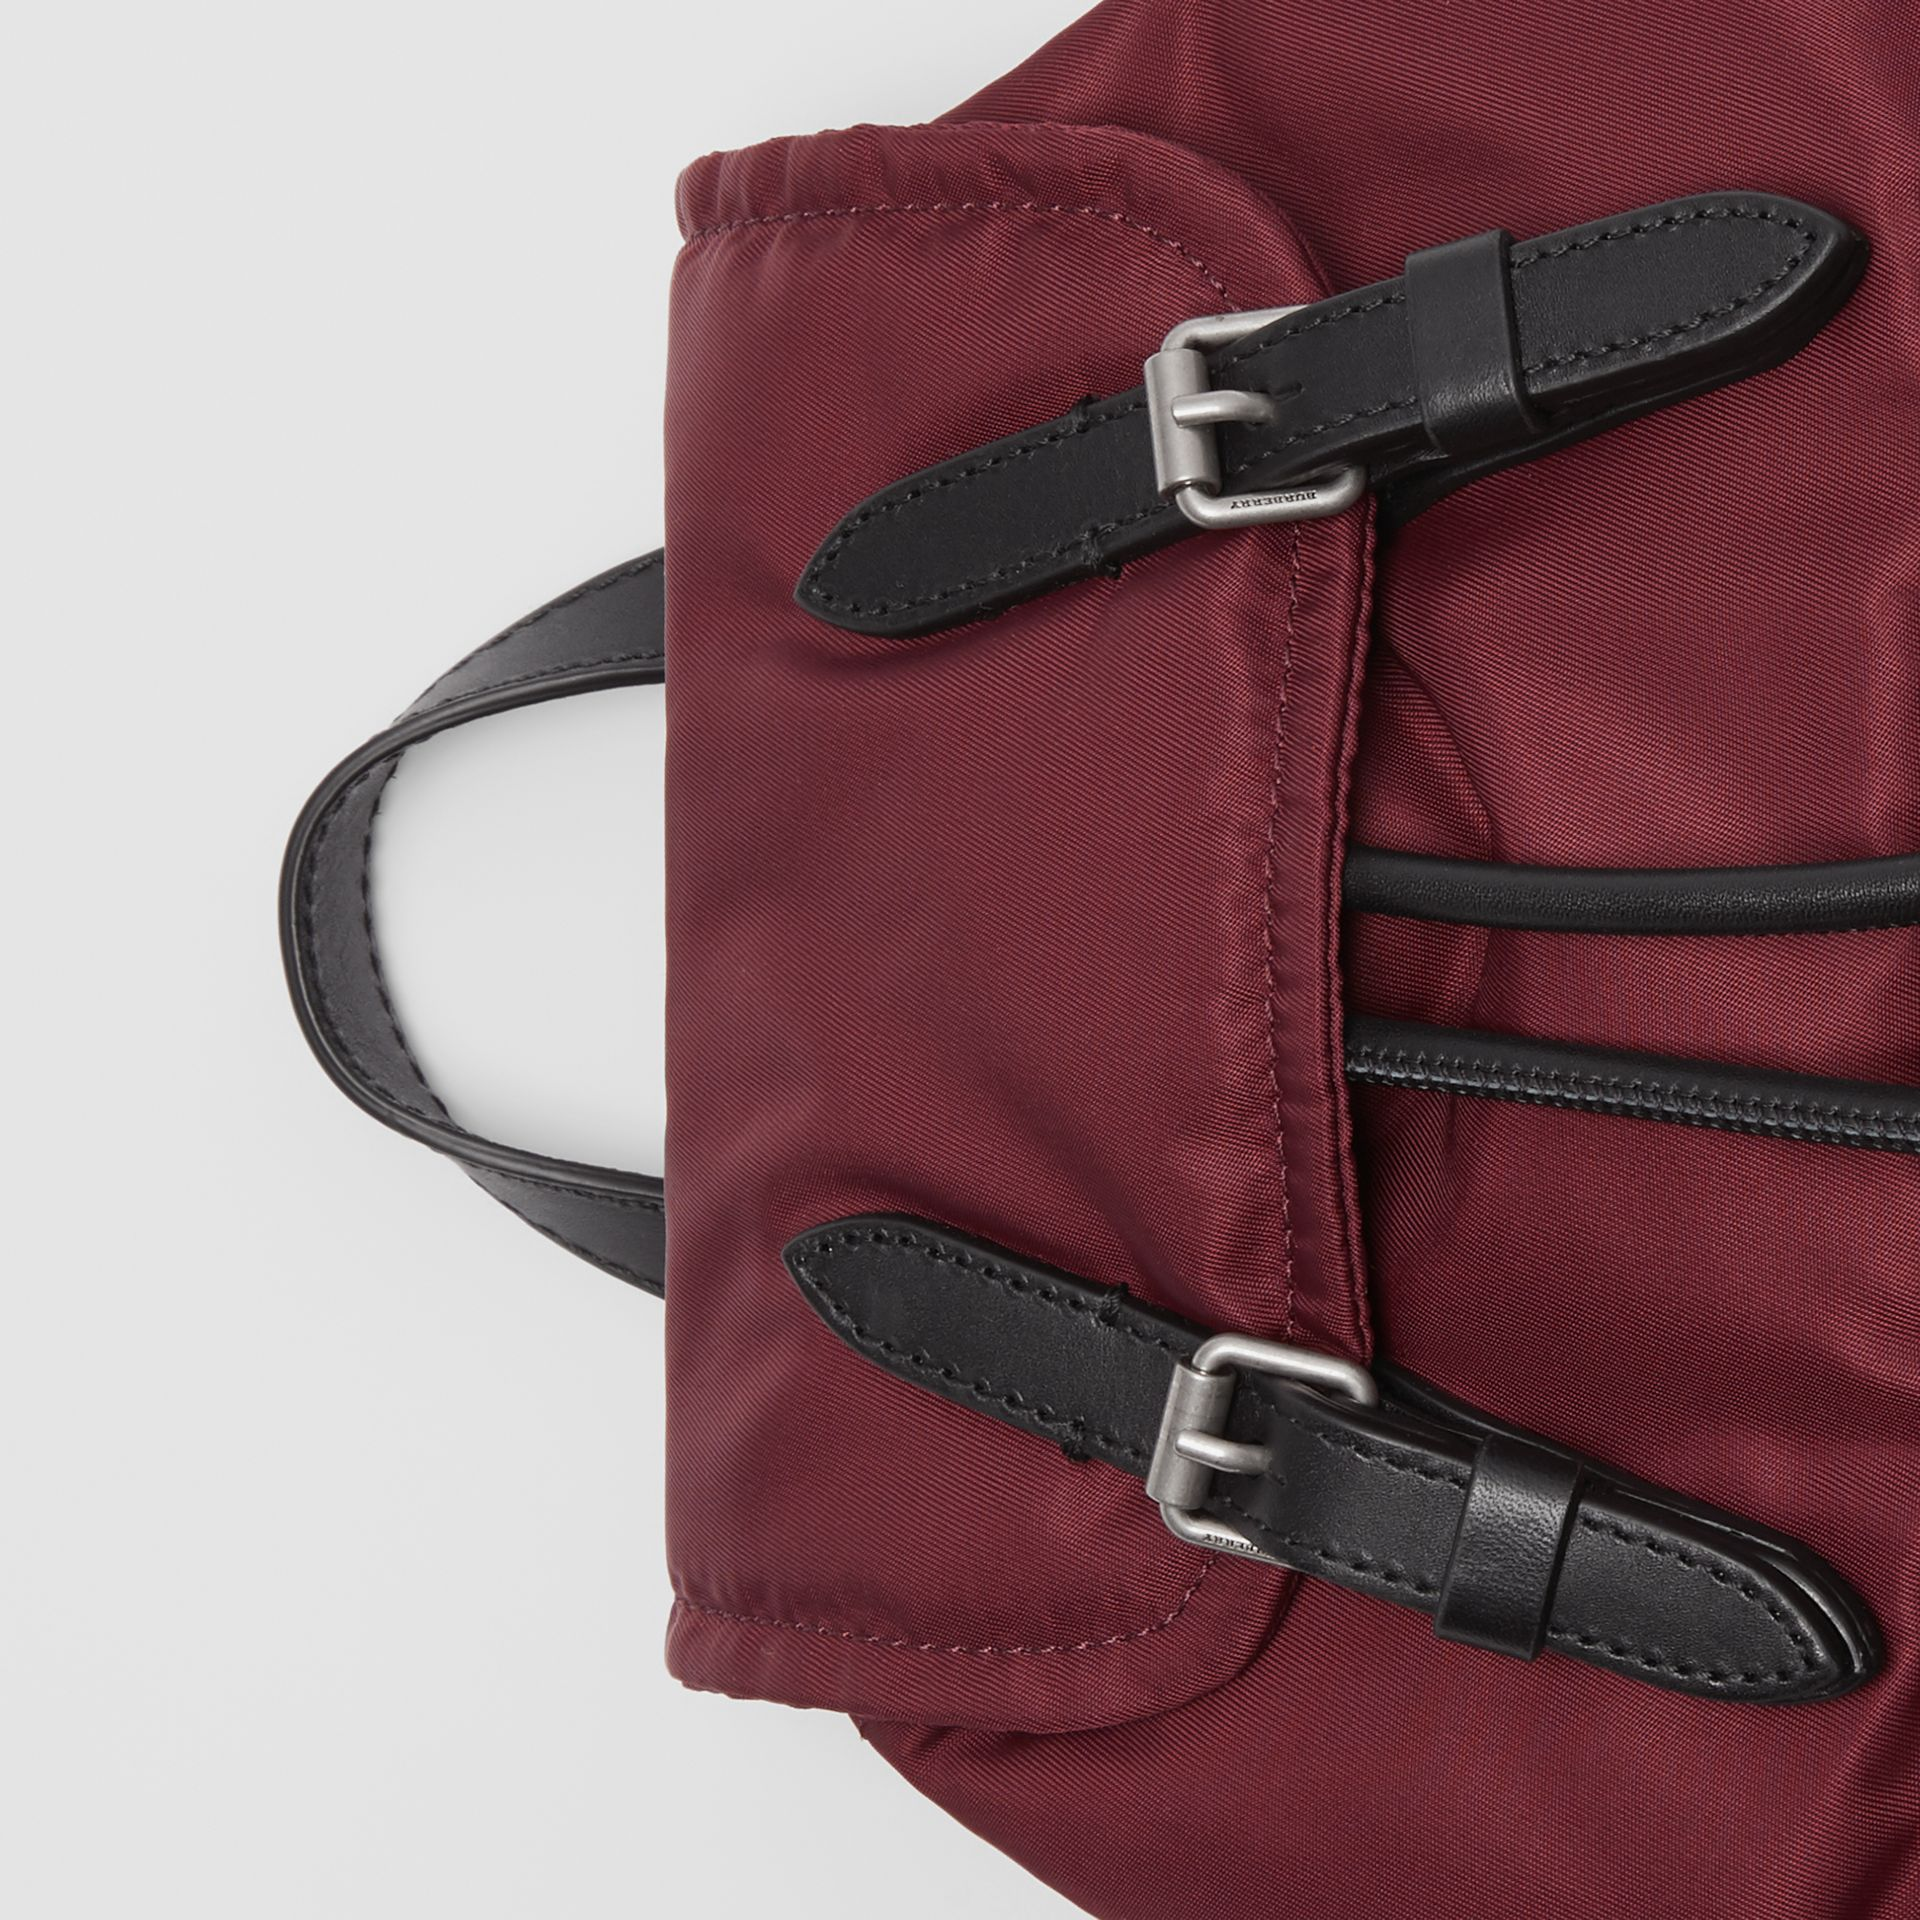 The Small Crossbody Rucksack in Puffer Nylon in Burgundy Red - Women | Burberry United Kingdom - gallery image 1